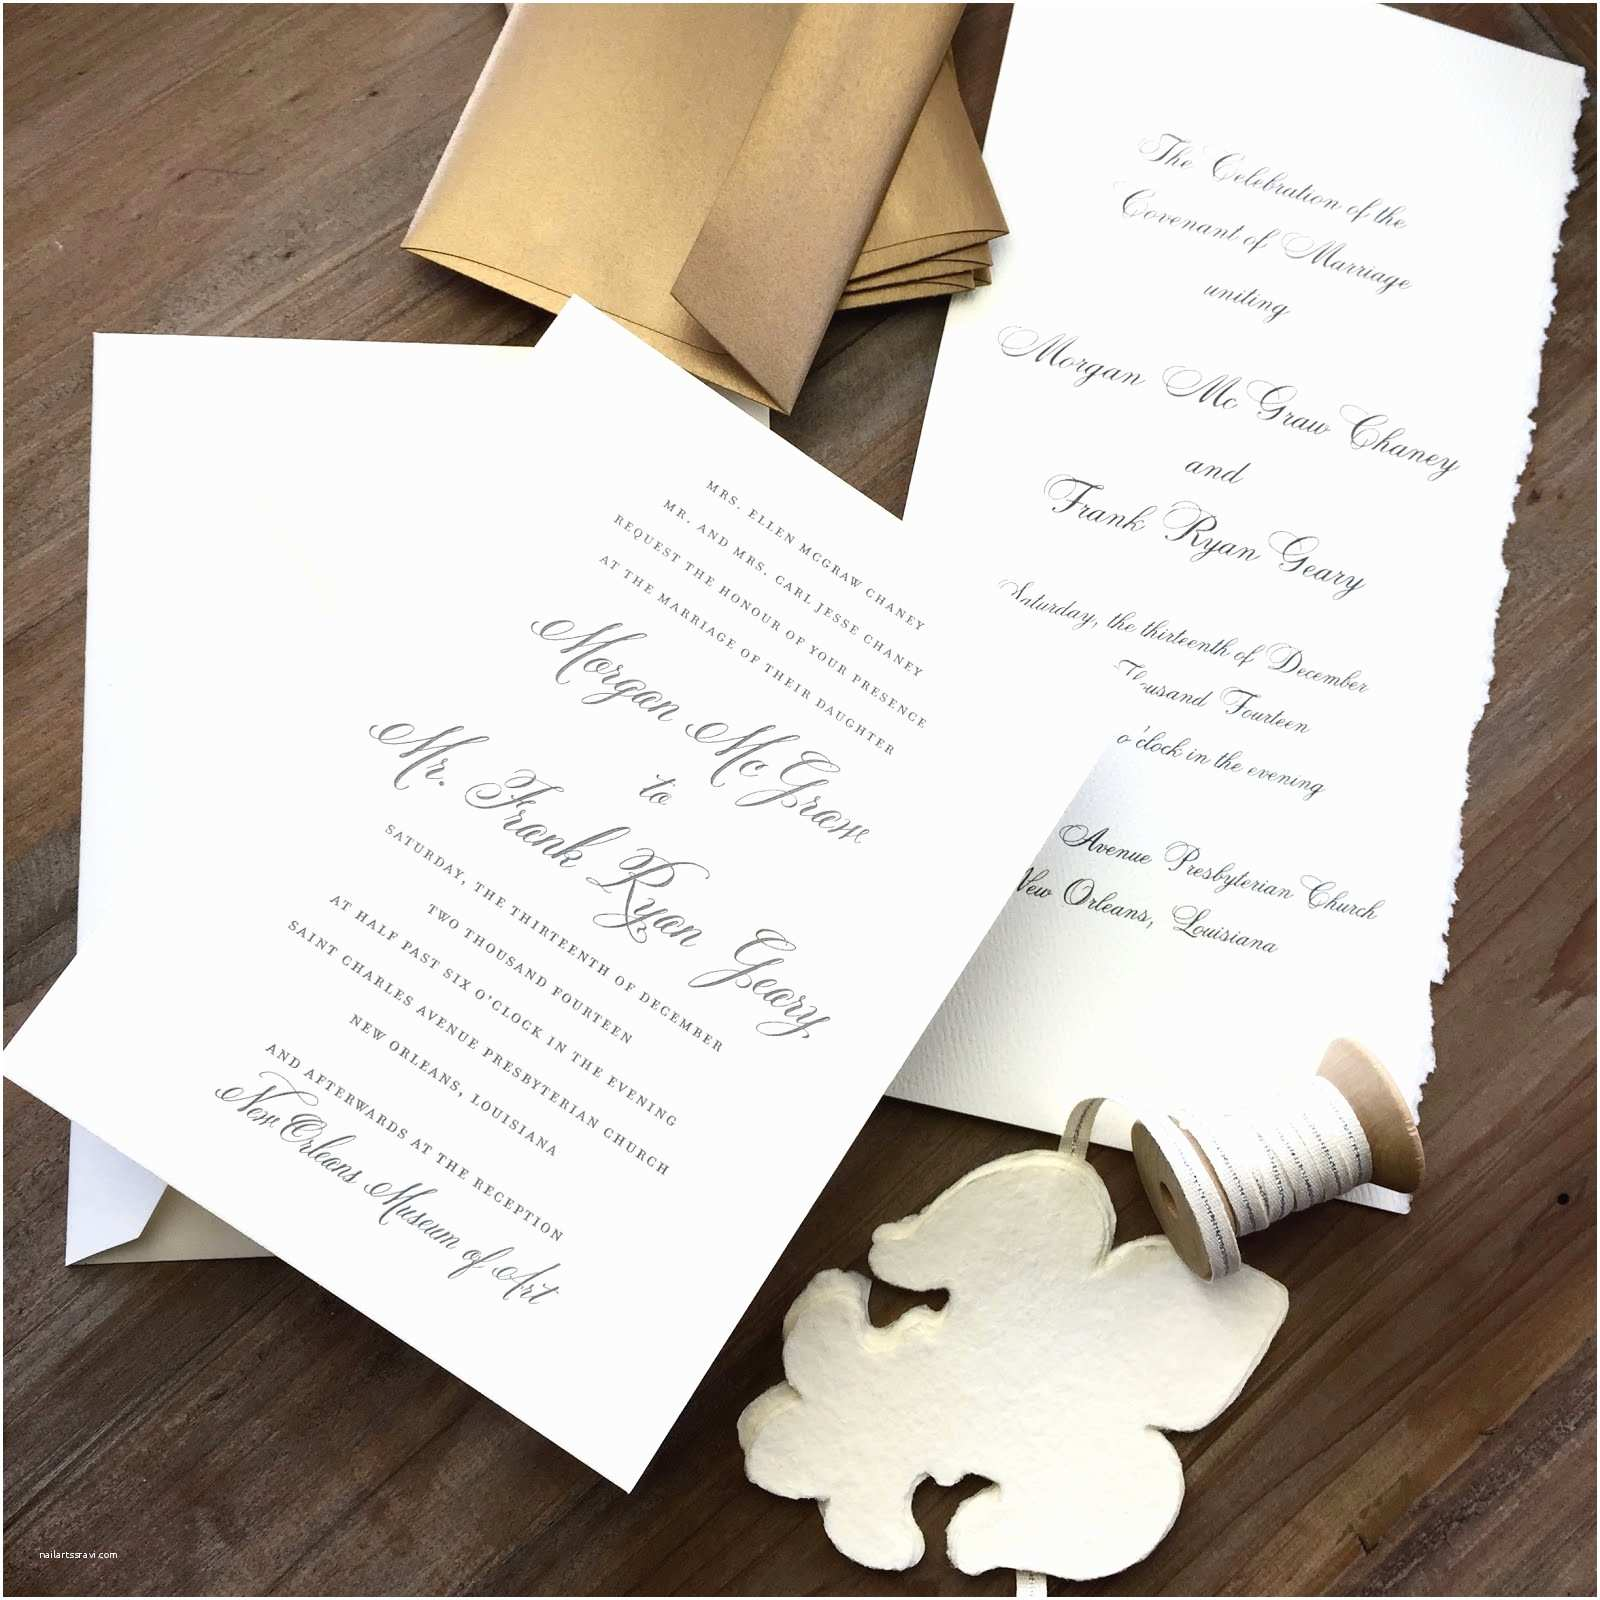 New Wedding Invitations Morgan Chaney and Ryan Geary New orleans Wedding